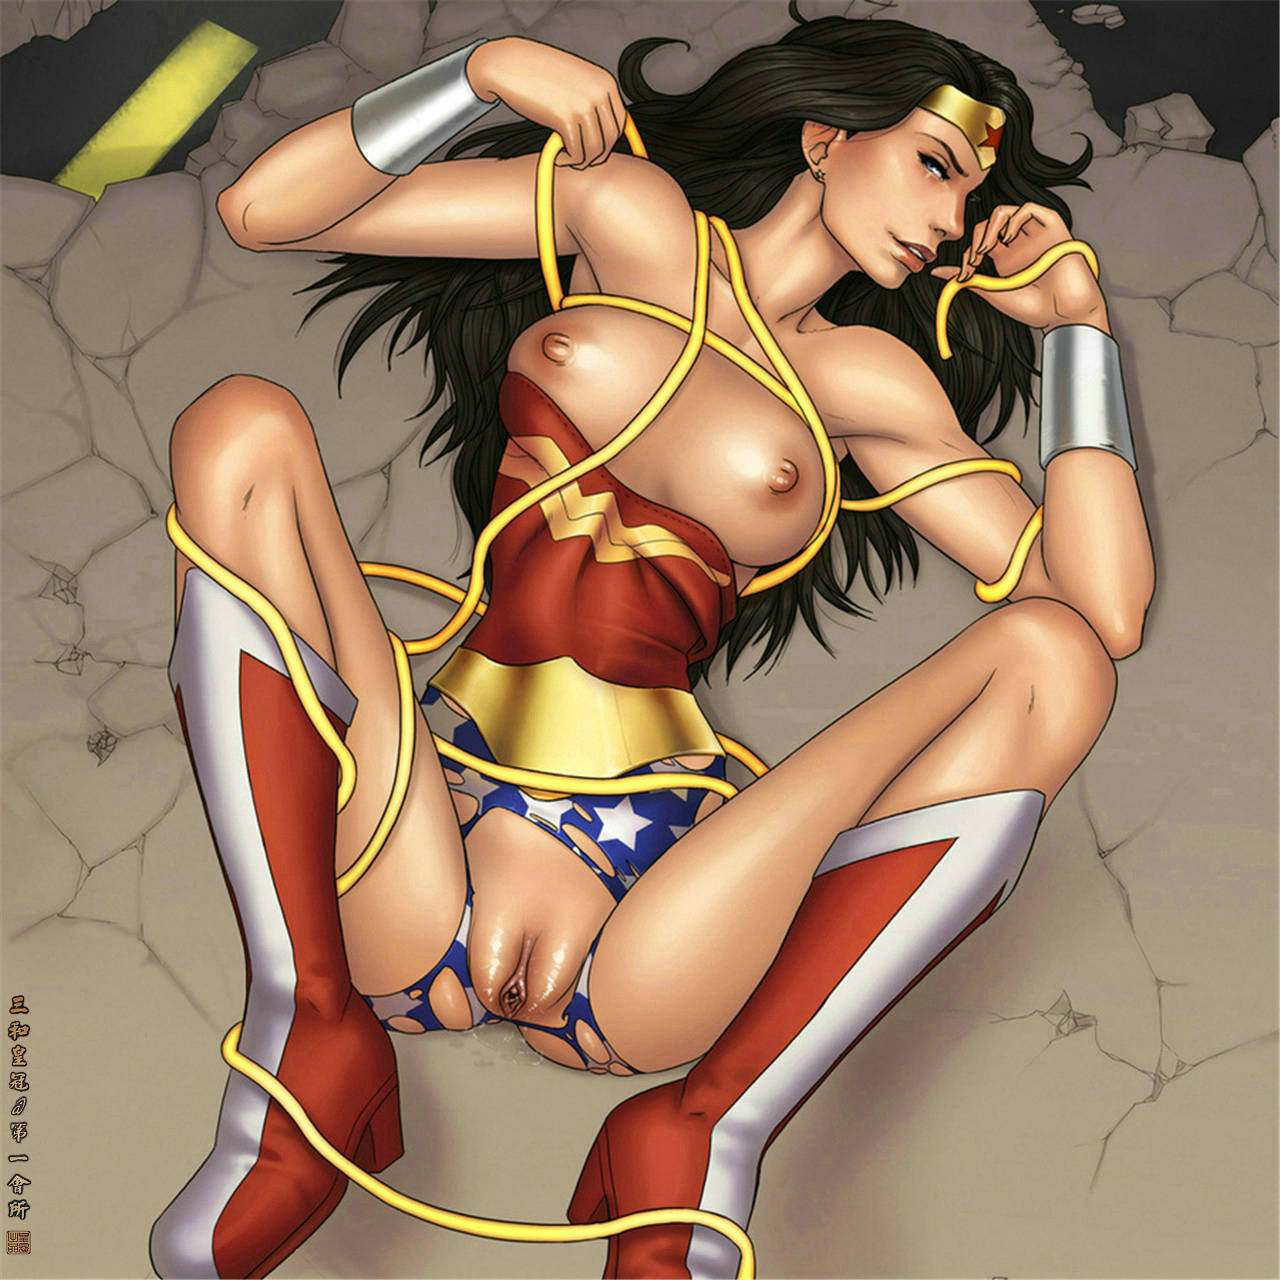 Wonder woman hot sex photos hentia images